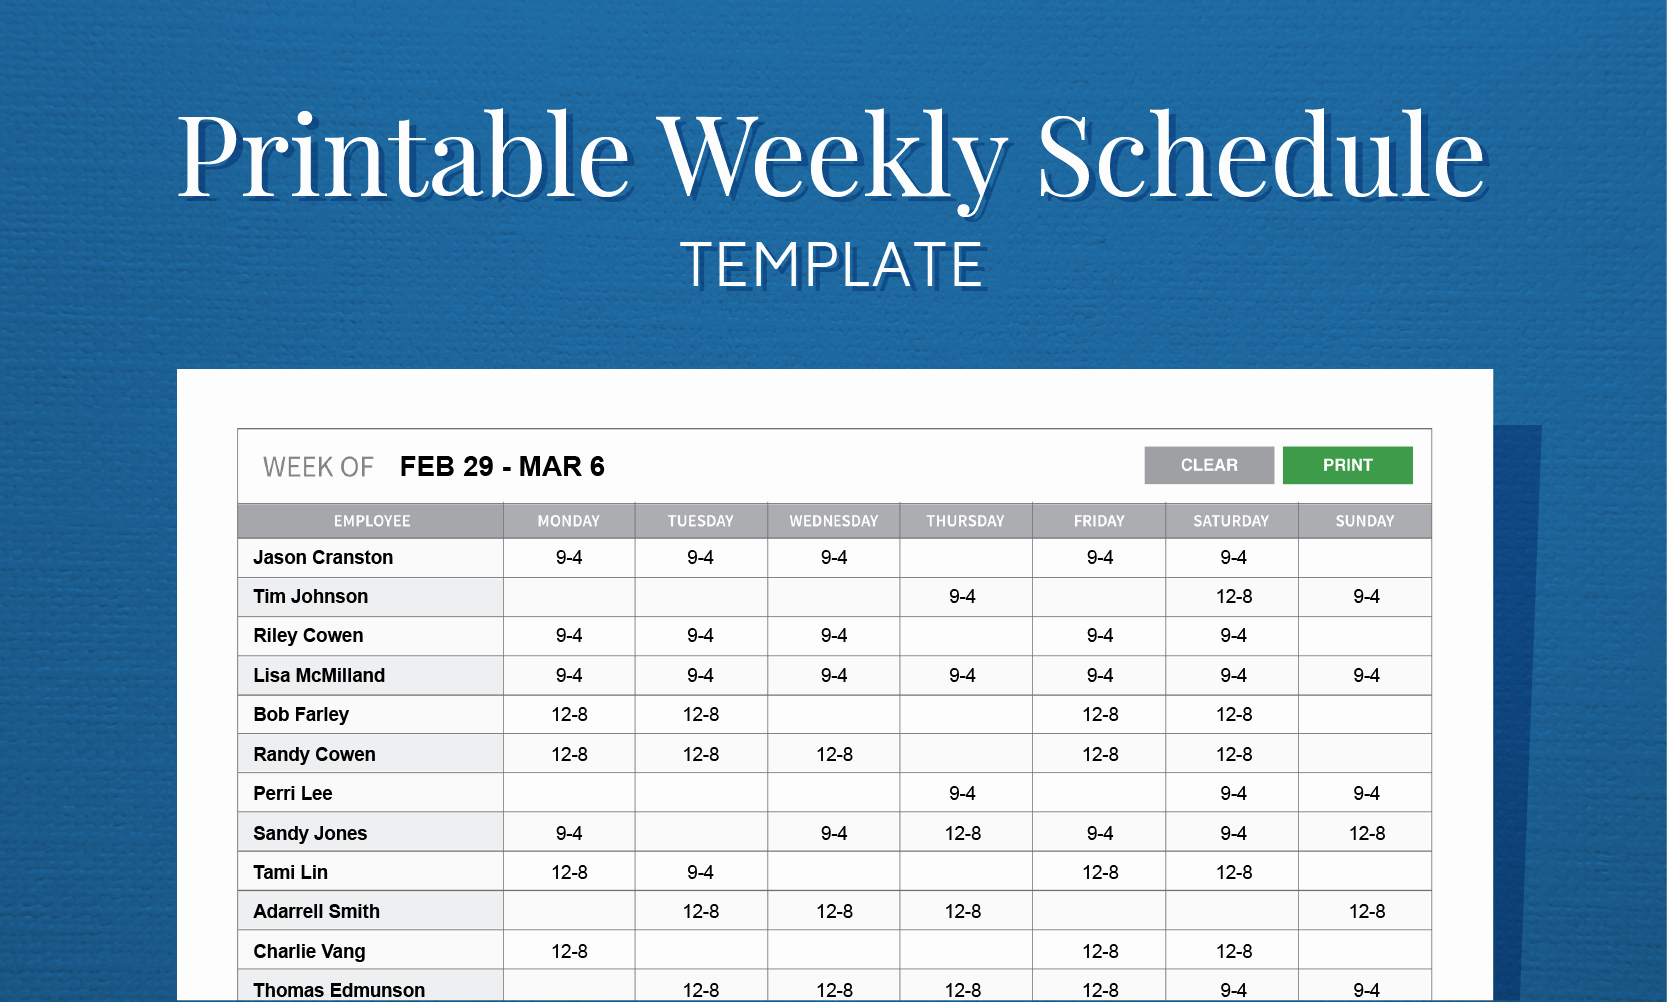 Employee Weekly Work Schedule Template Lovely Free Printable Work Schedule Template for Employee